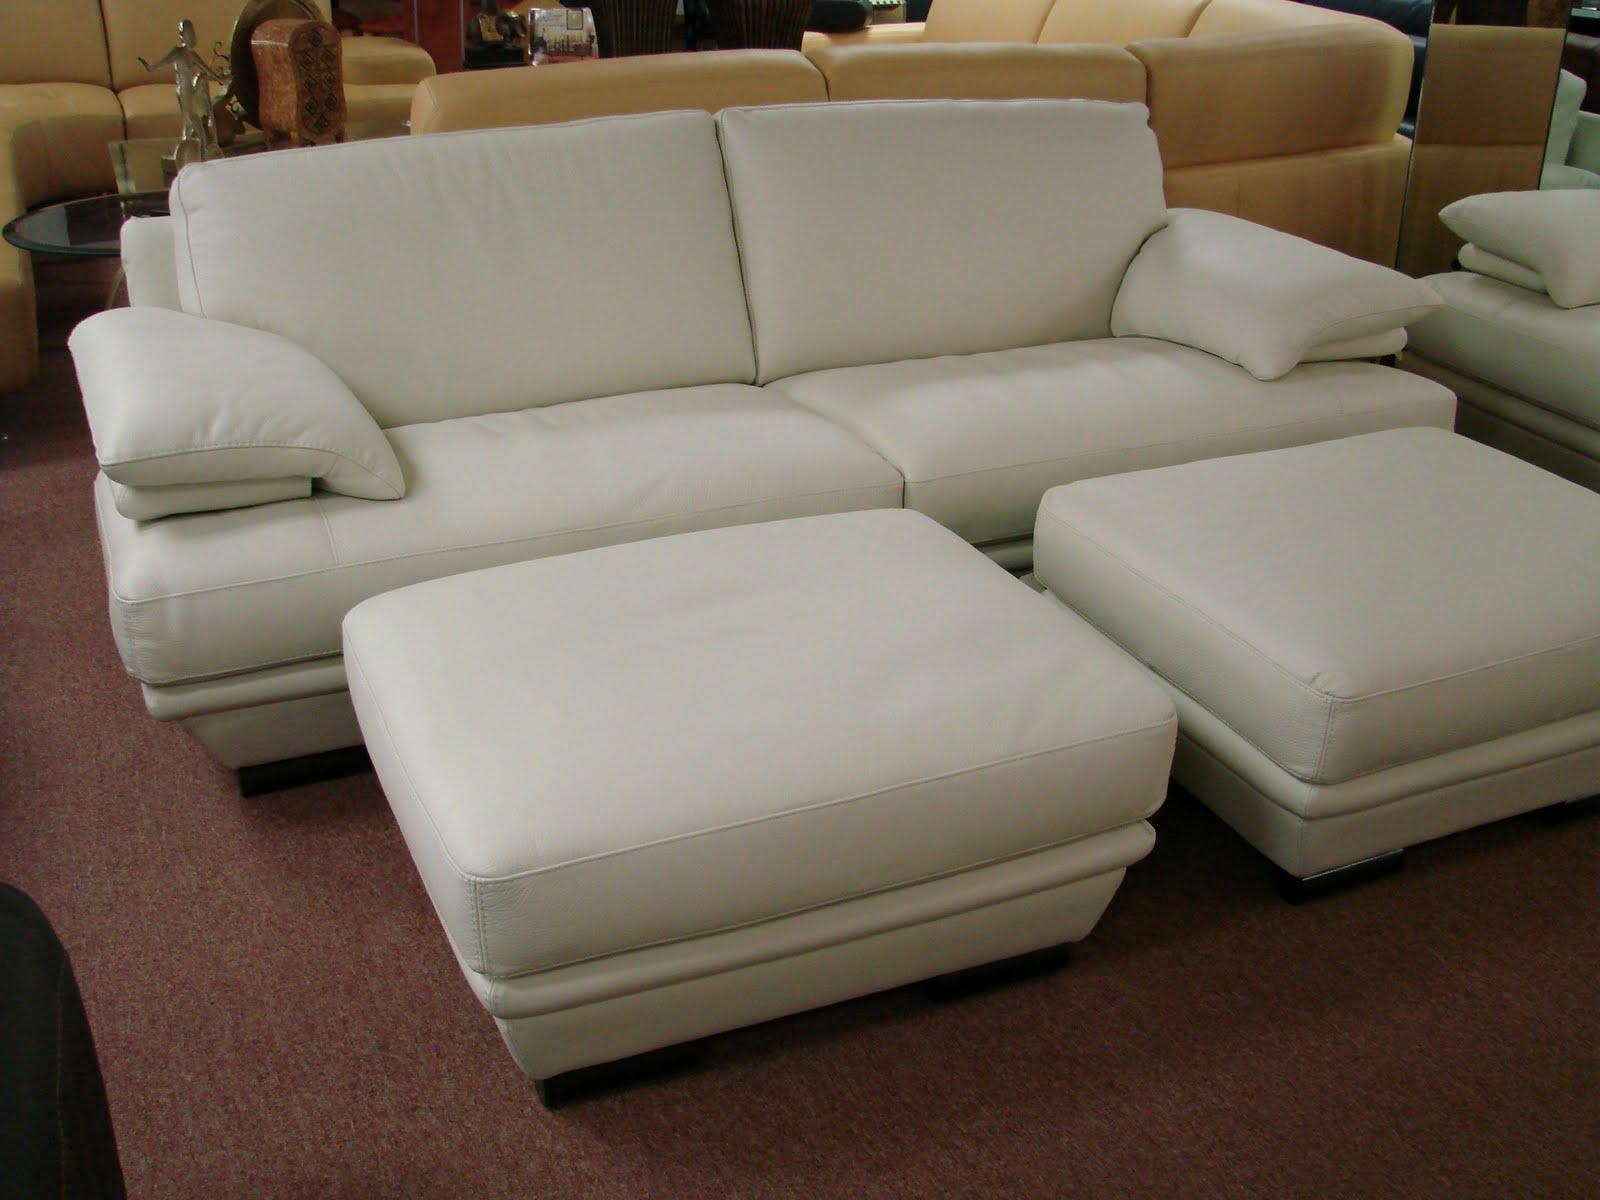 New Sofa White Leather 14 For Your Sofas And Couches Ideas With inside White Leather Sofas